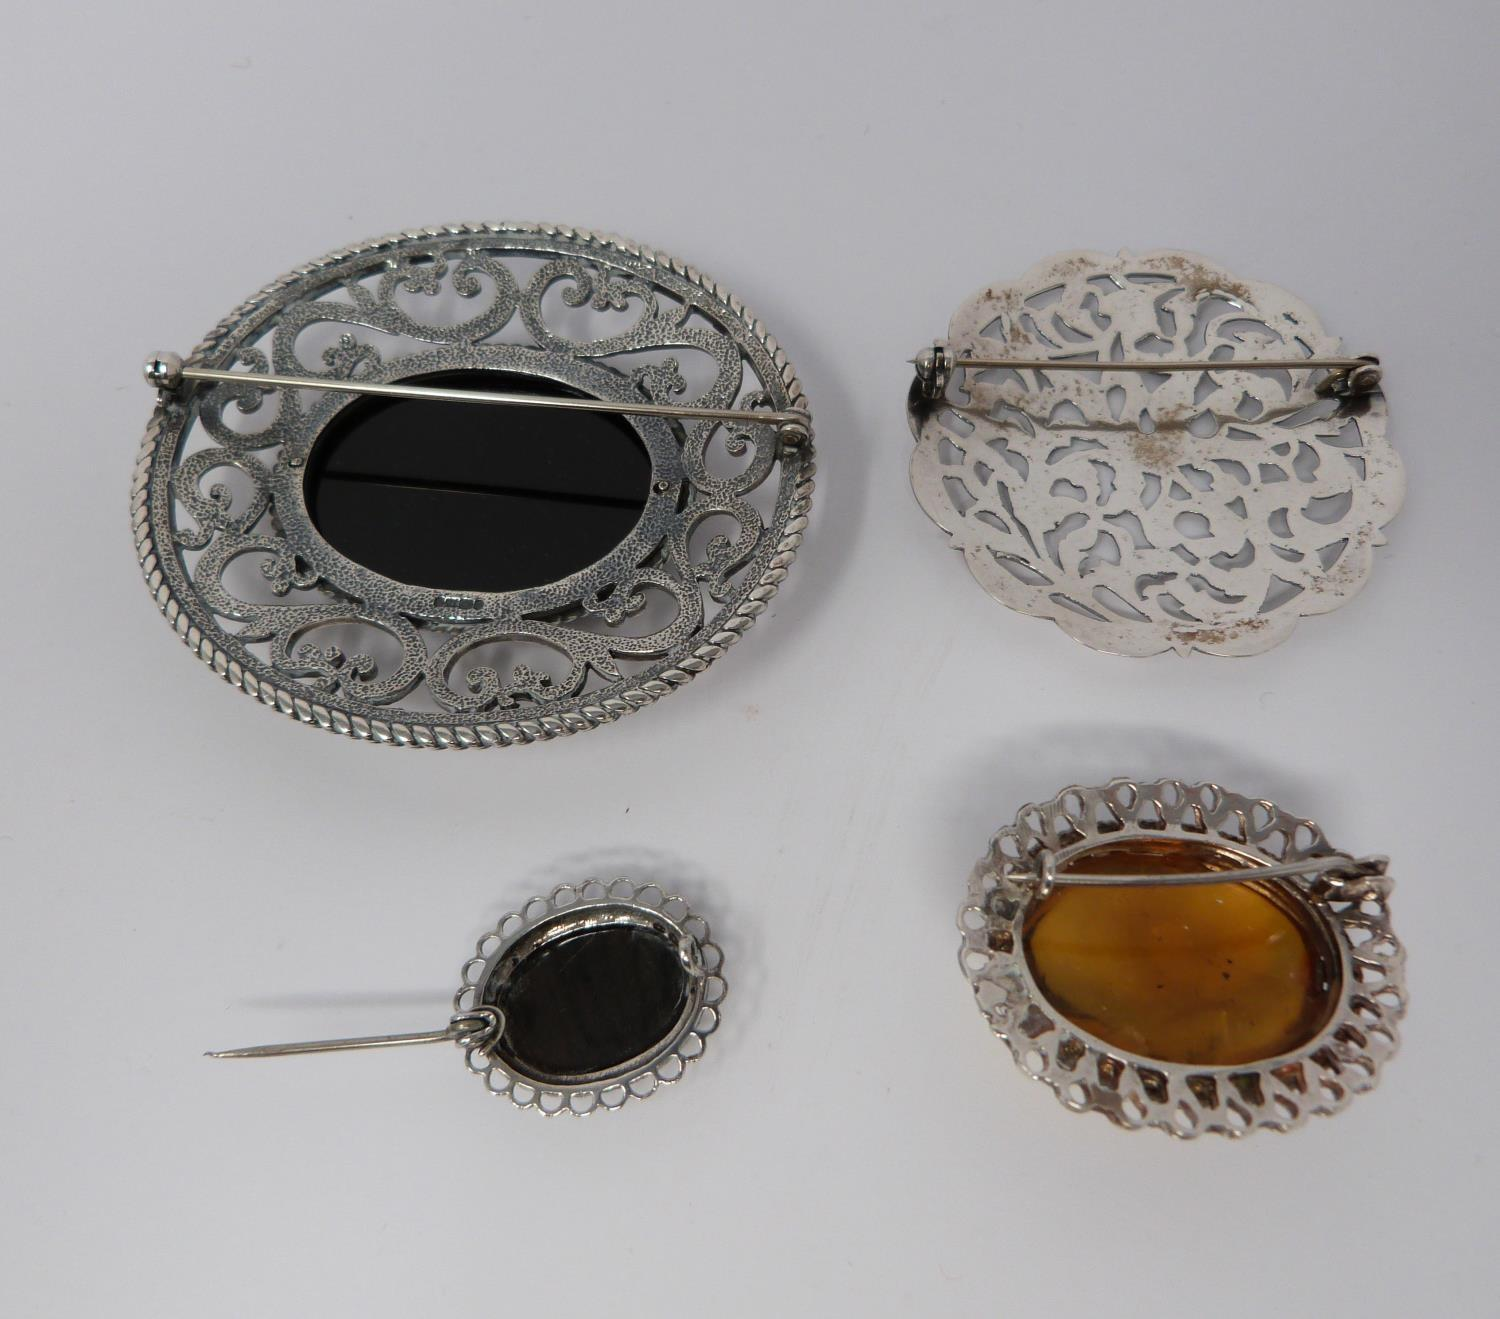 Large jet and hallmarked silver pierced brooch, with a pierced white metal brooch, small silver - Image 2 of 7